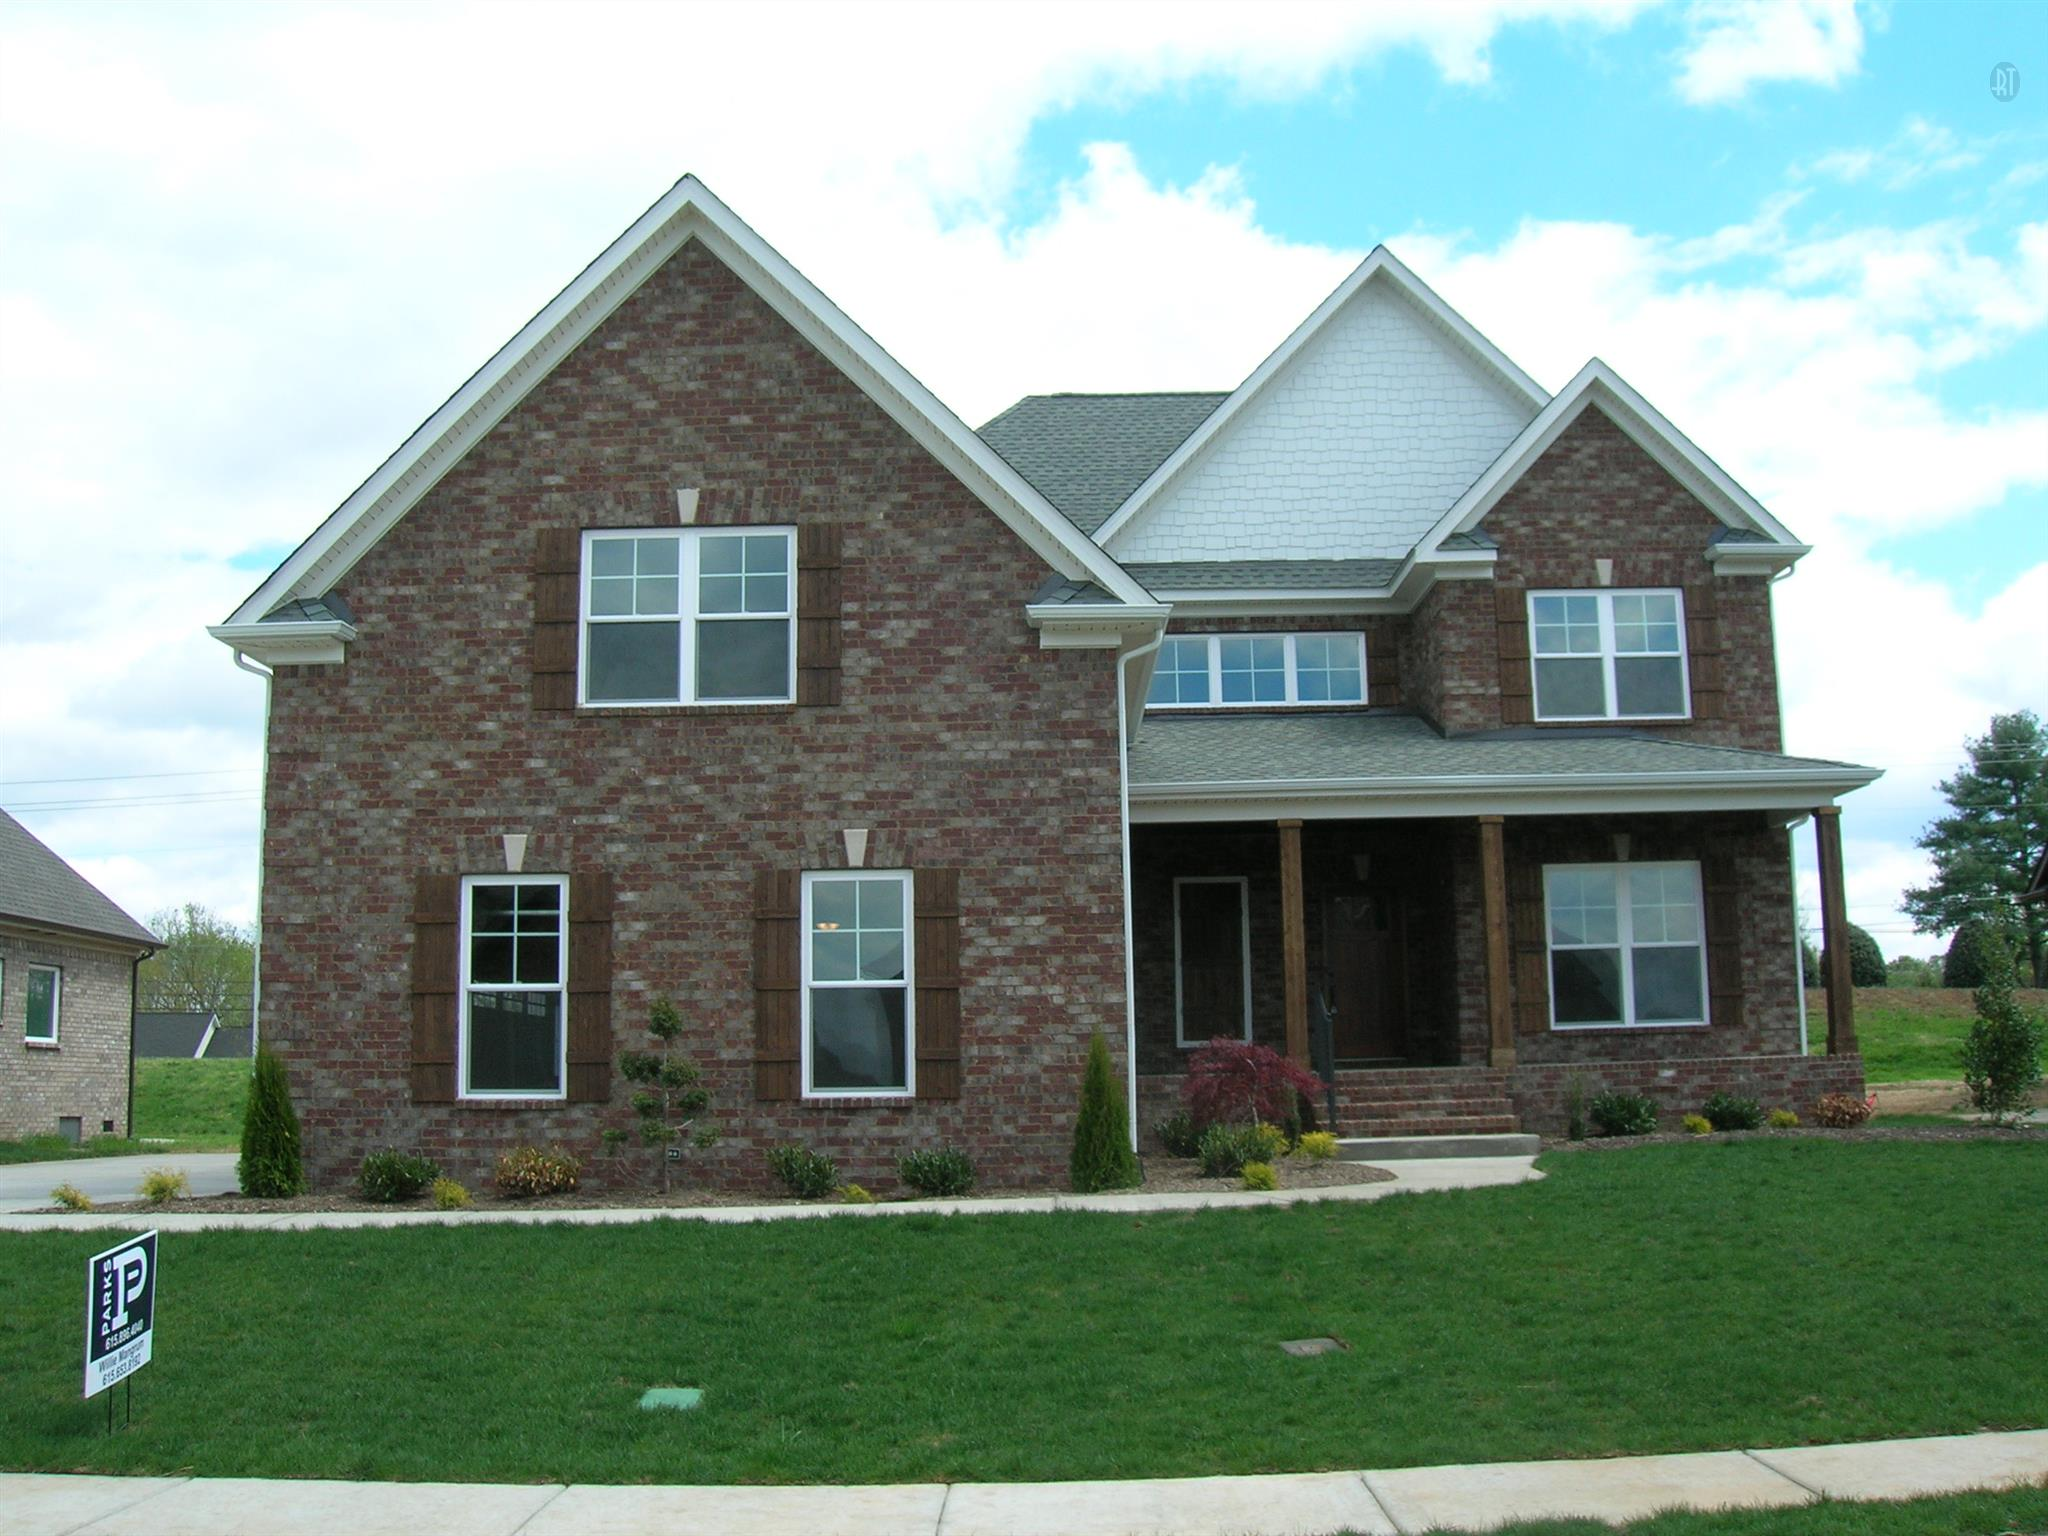 2 Williams Rd, Christiana, TN